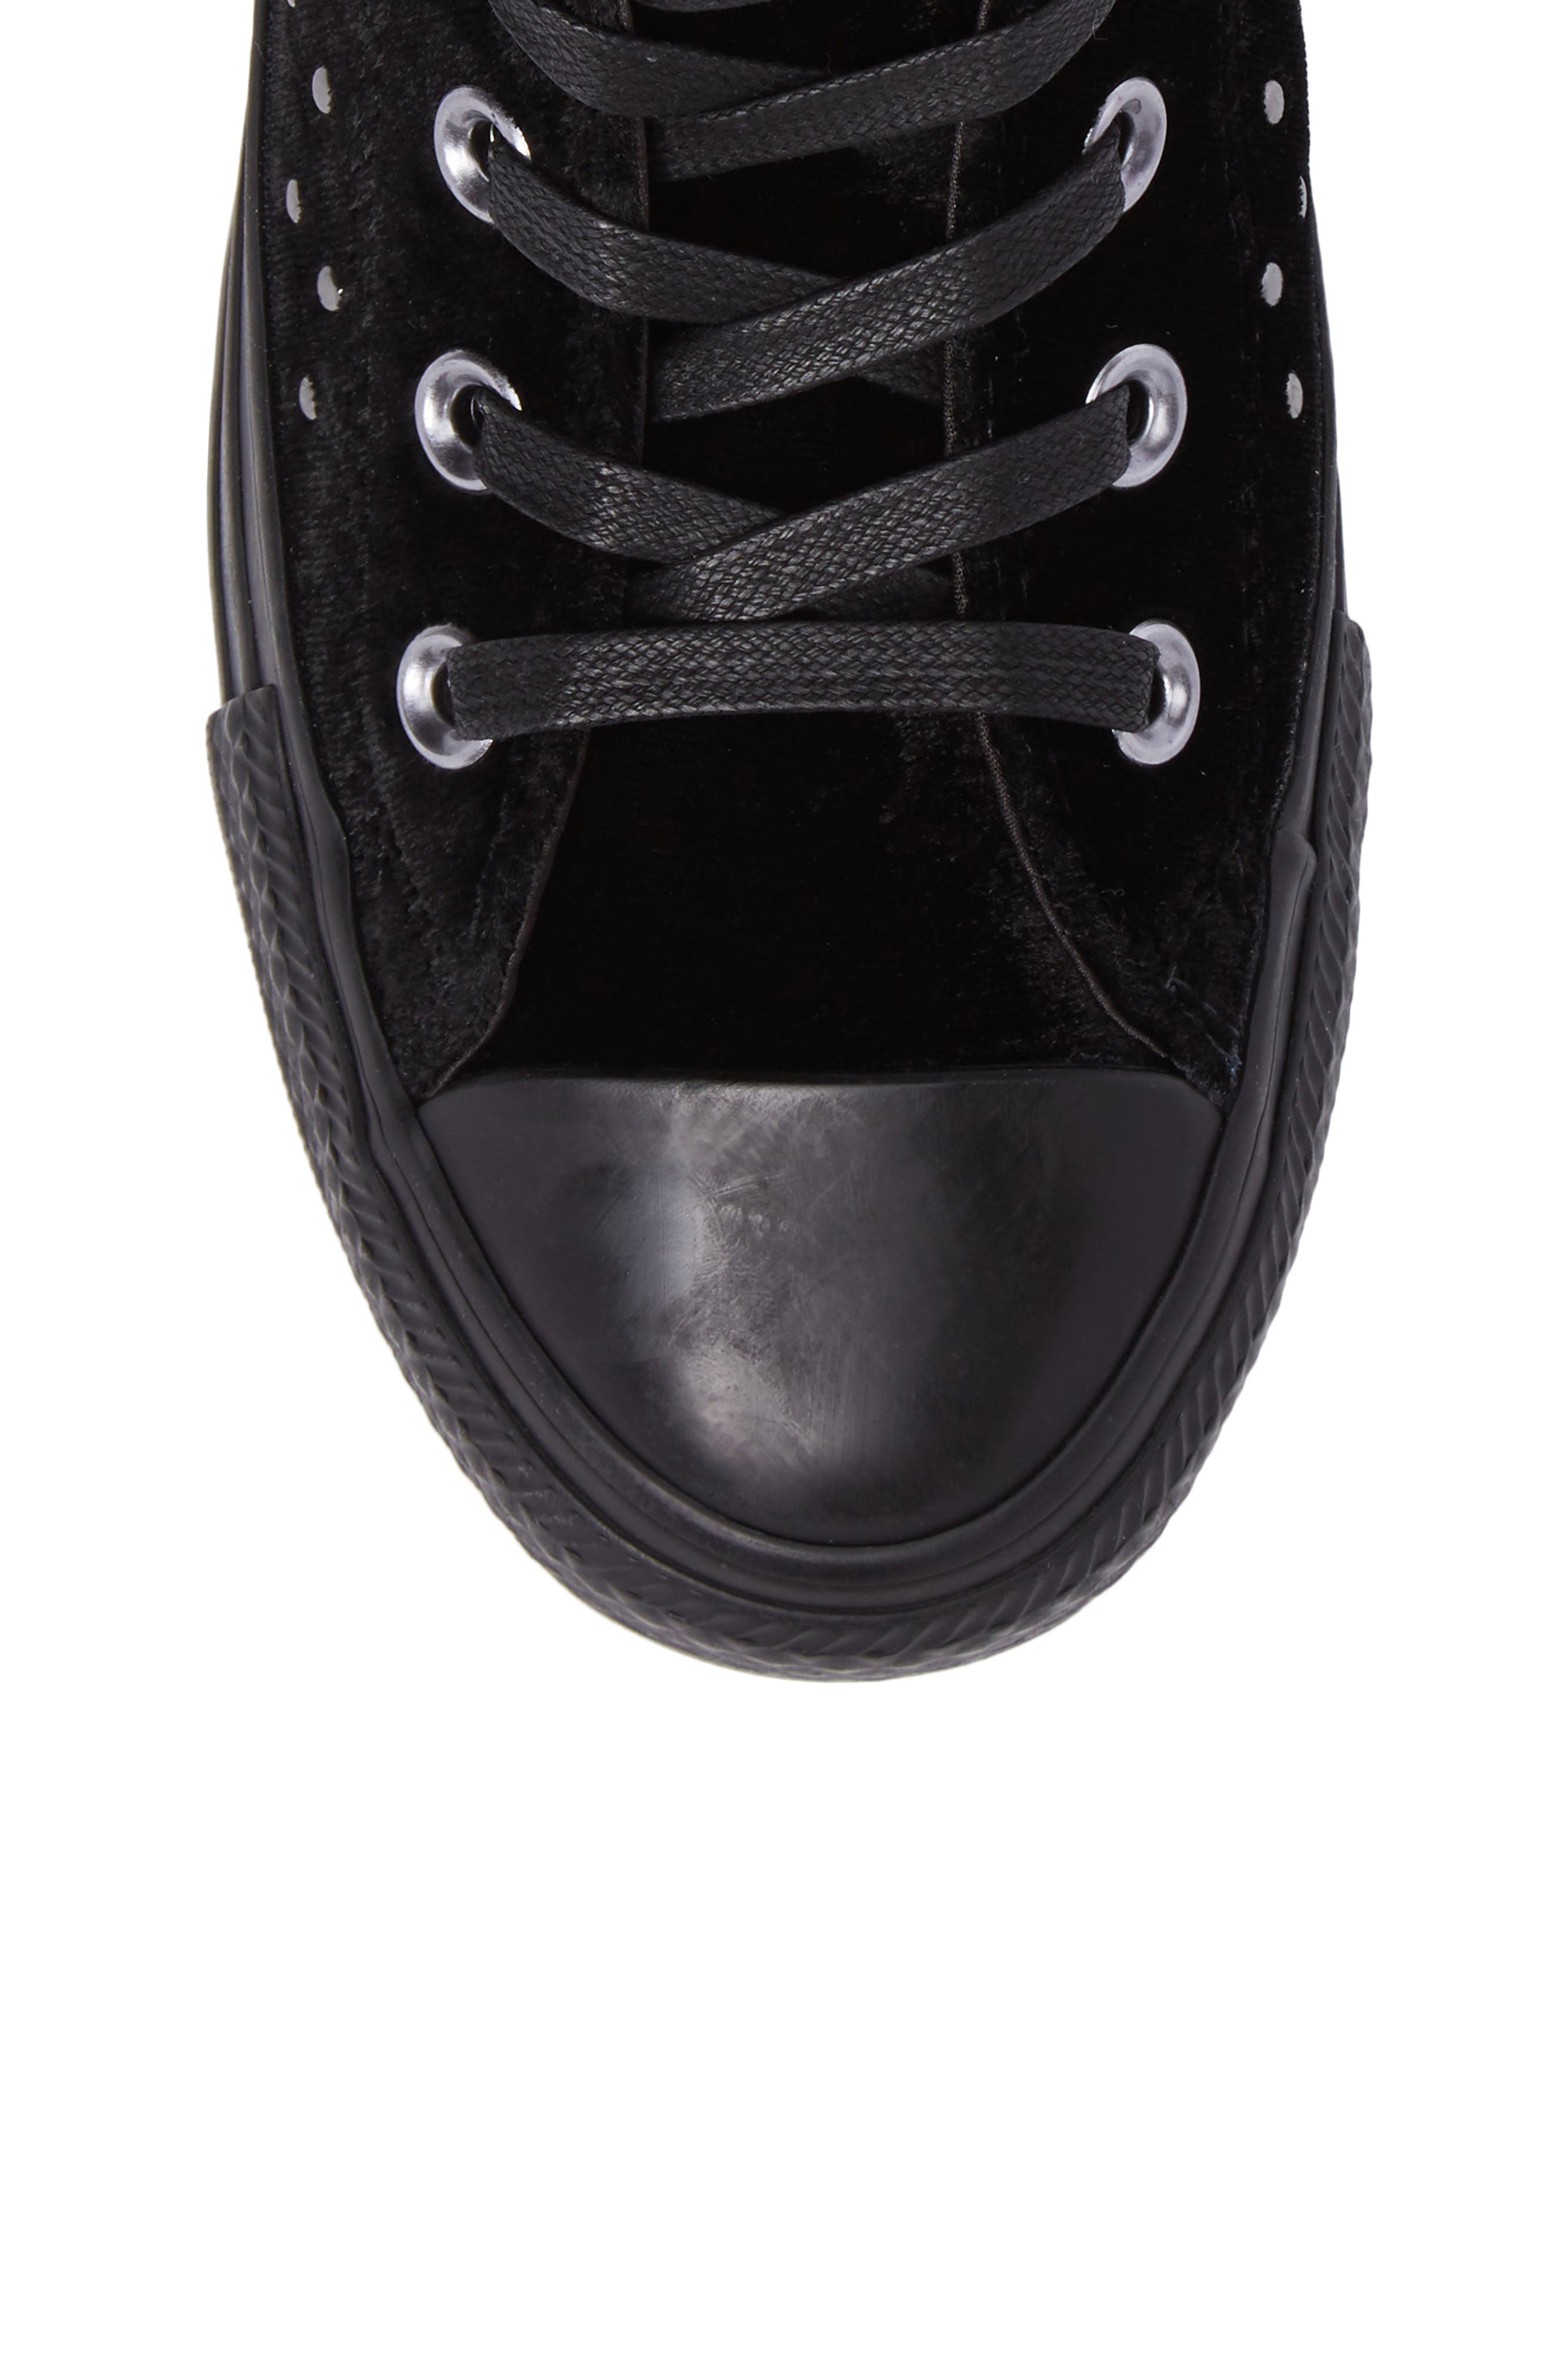 Chuck Taylor<sup>®</sup> All Star<sup>®</sup> Studded High Top Sneakers,                             Alternate thumbnail 5, color,                             001